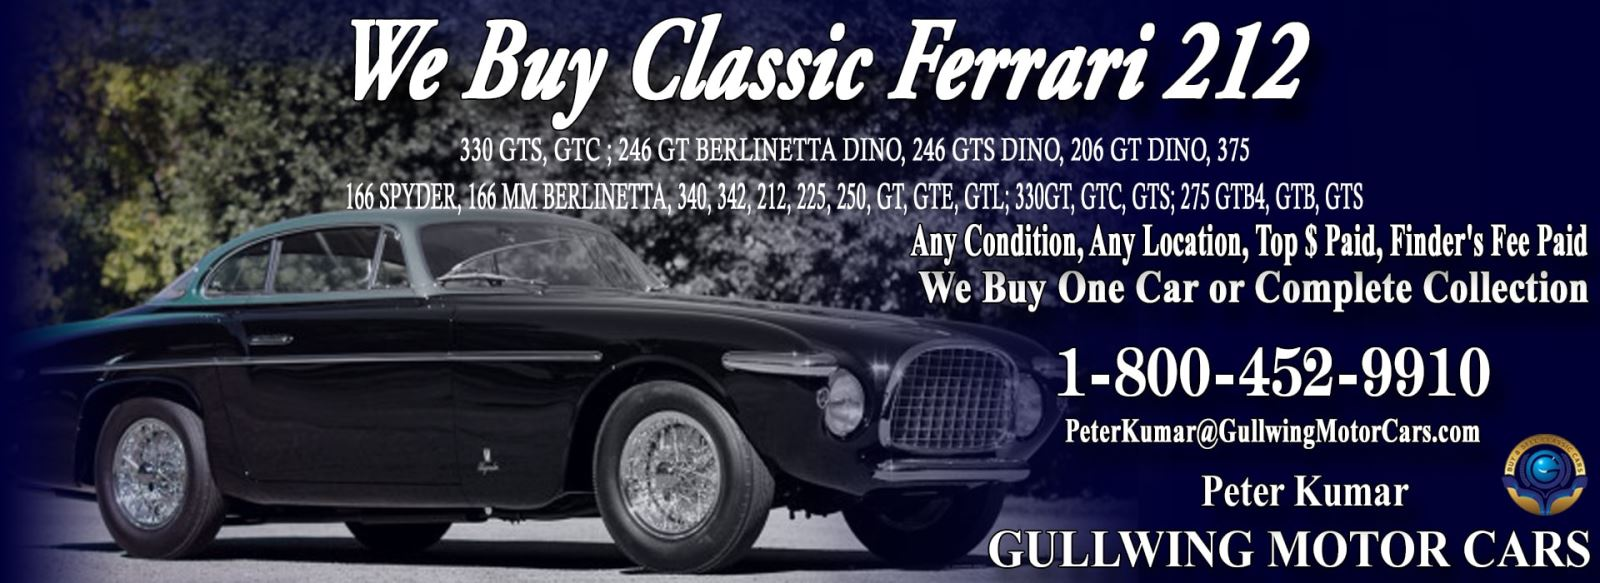 Classic Ferrari 212 for sale, we buy vintage Ferrari 212. Call Peter Kumar. Gullwing Motor